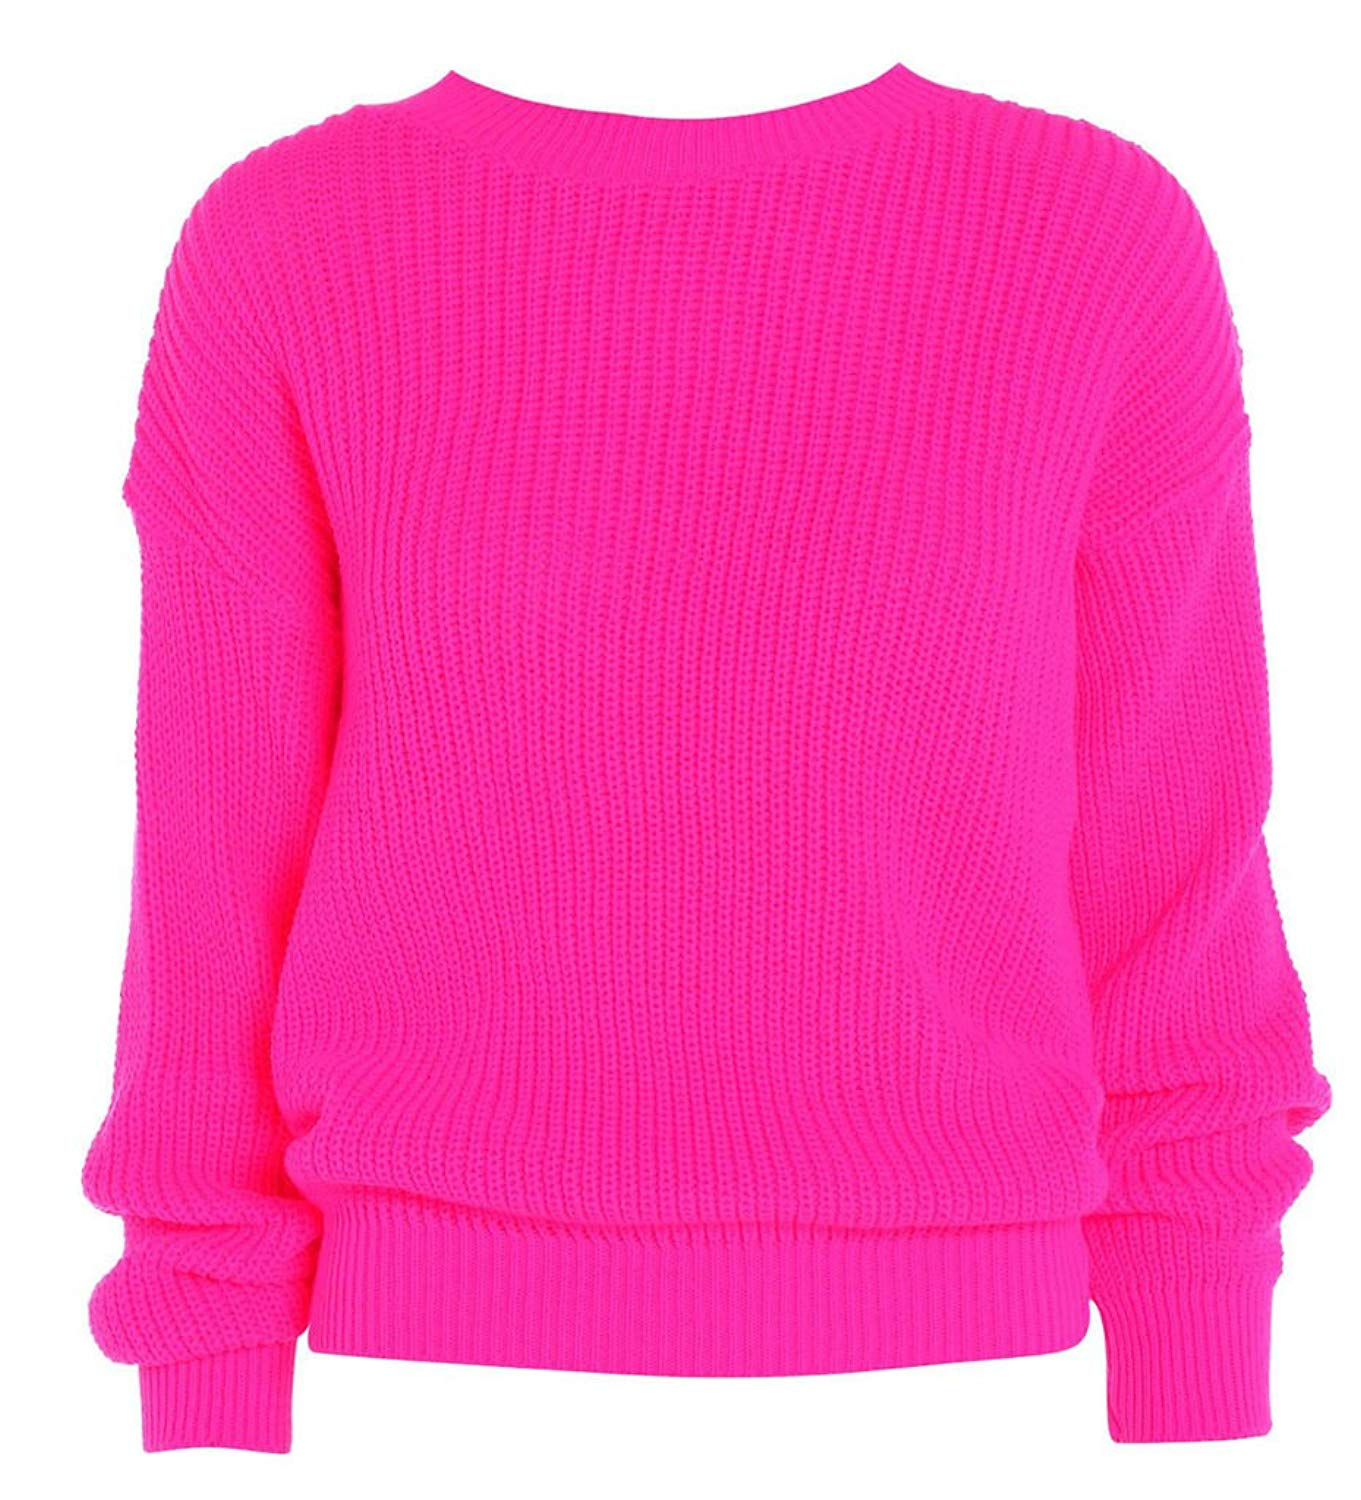 Get Quotations · Hi Fashionz Girls Laides Women Long Sleeves Oversize Knitted  Baggy Jumper Sweater 10da63eaa